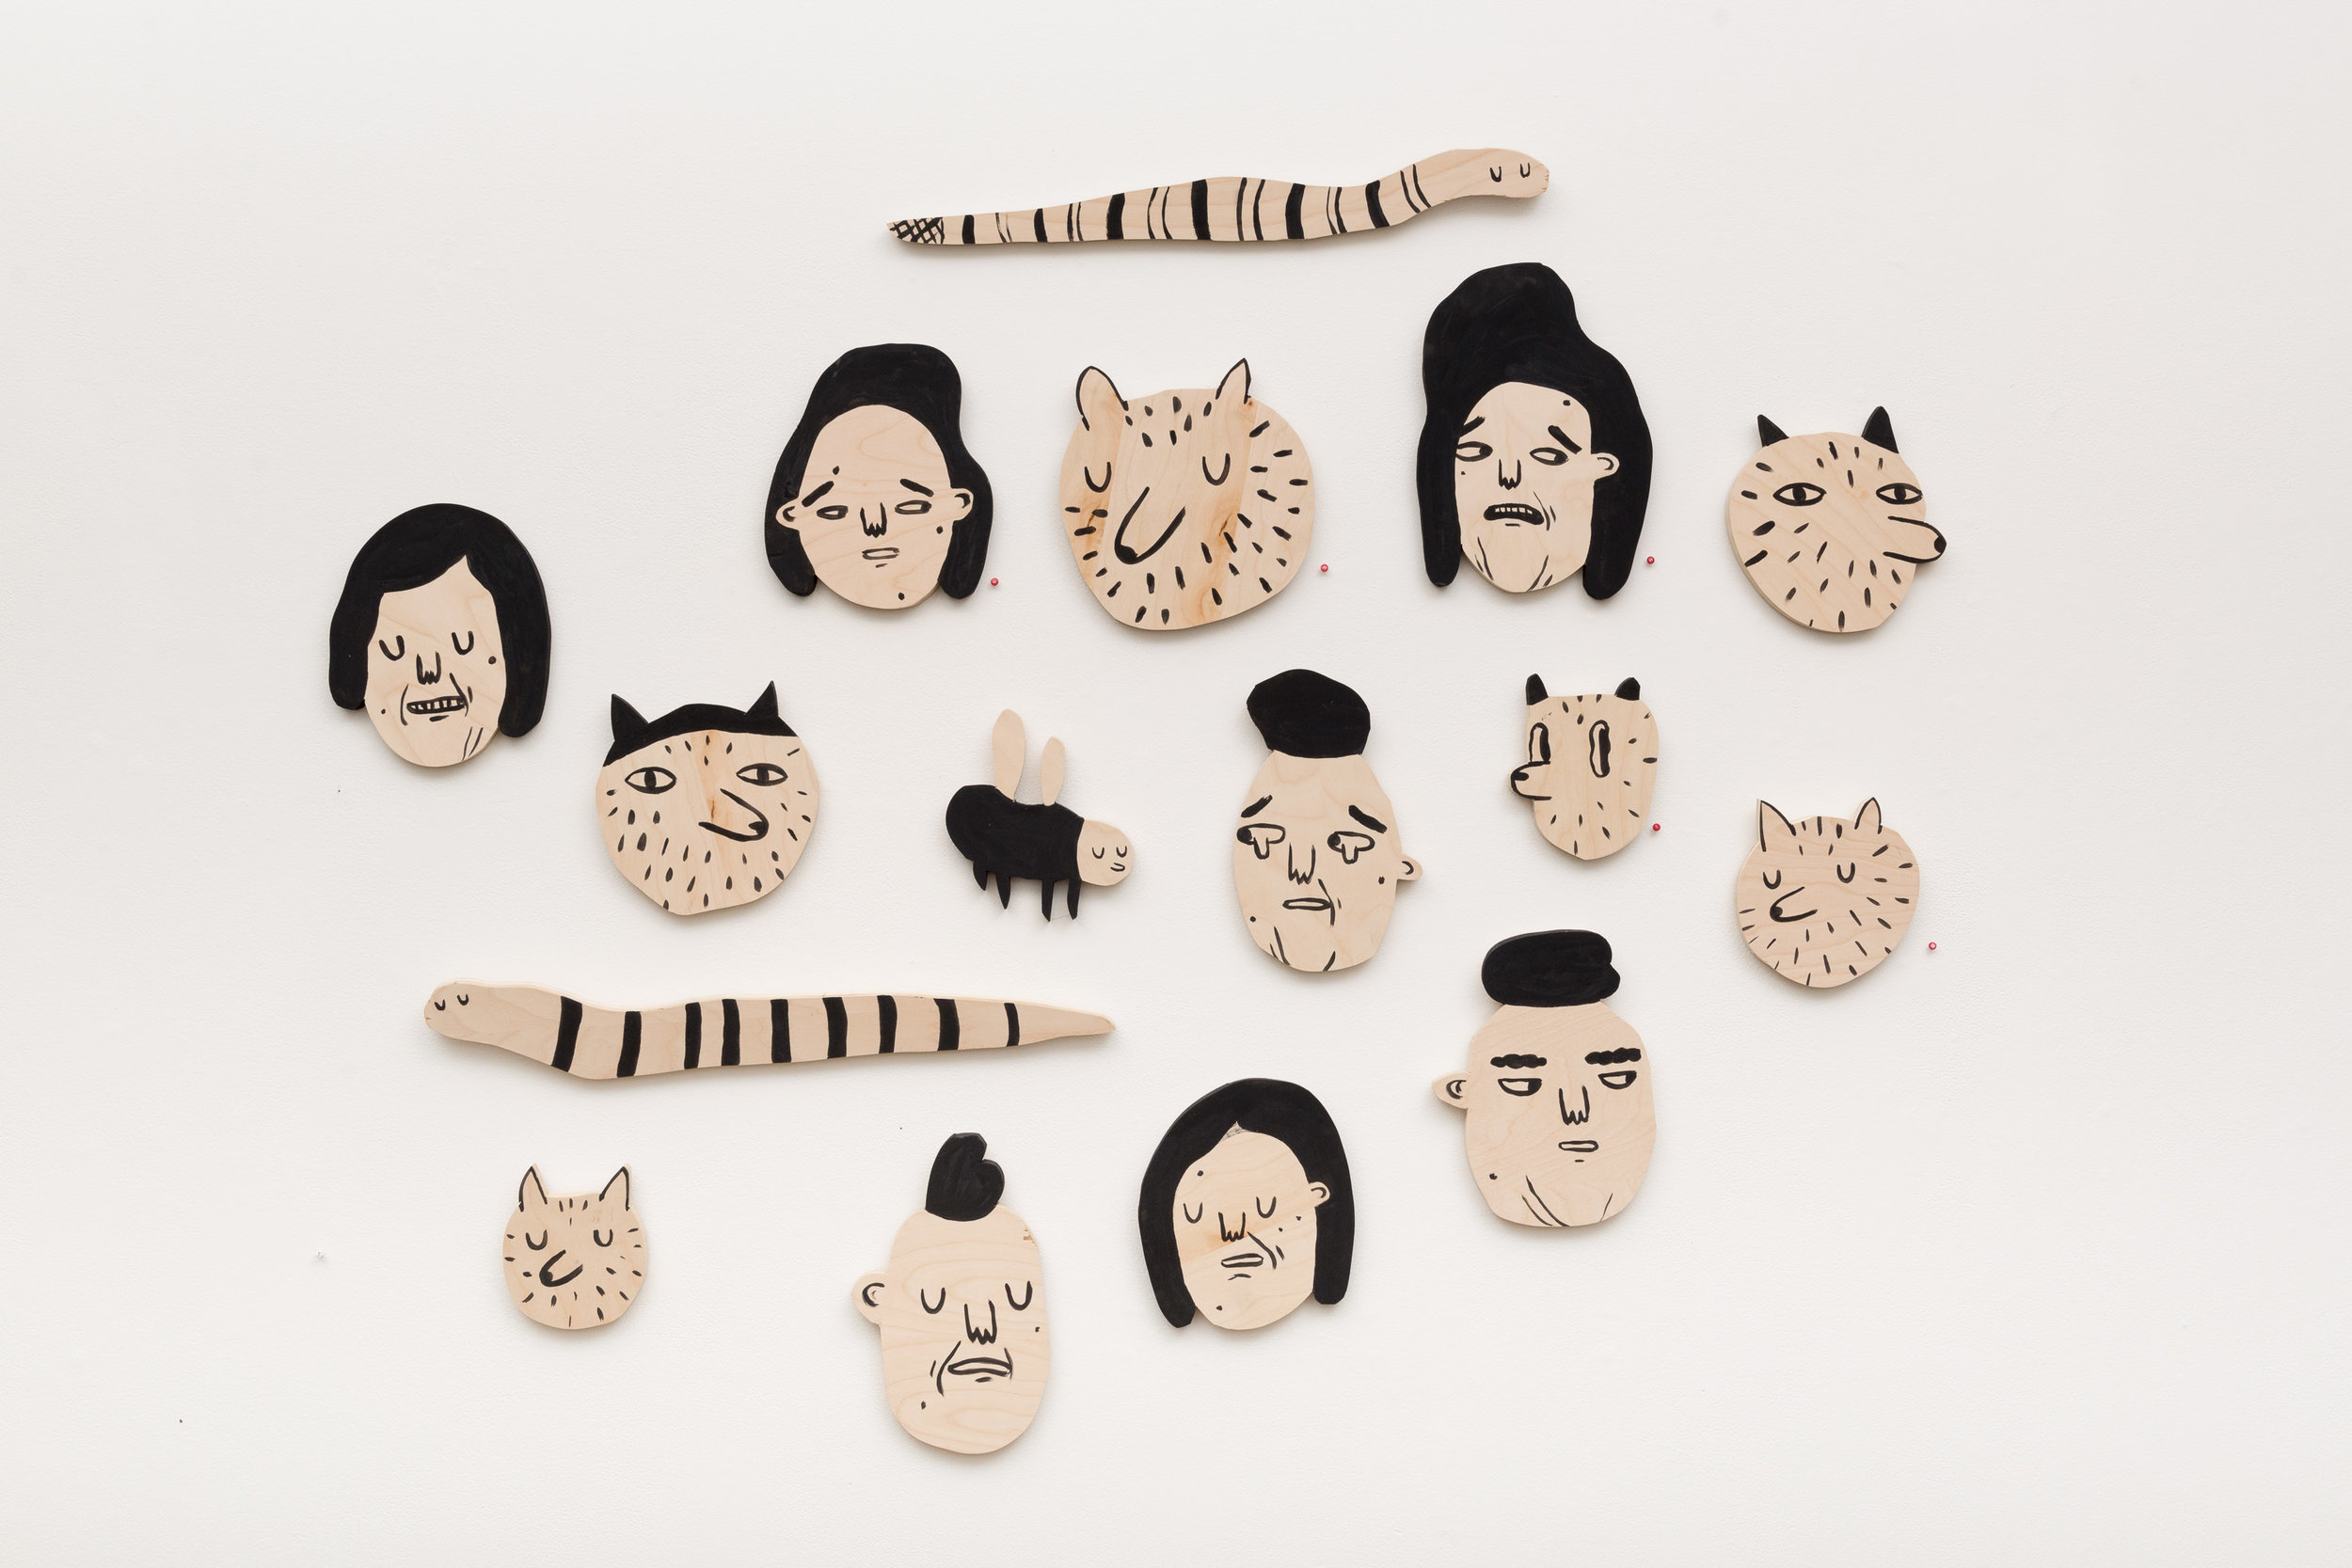 Caitlin Duennebier ,  Even the Bugs and Animals are Sad , milk paint on wood, various sizes, $75 each, $950 for set of 14